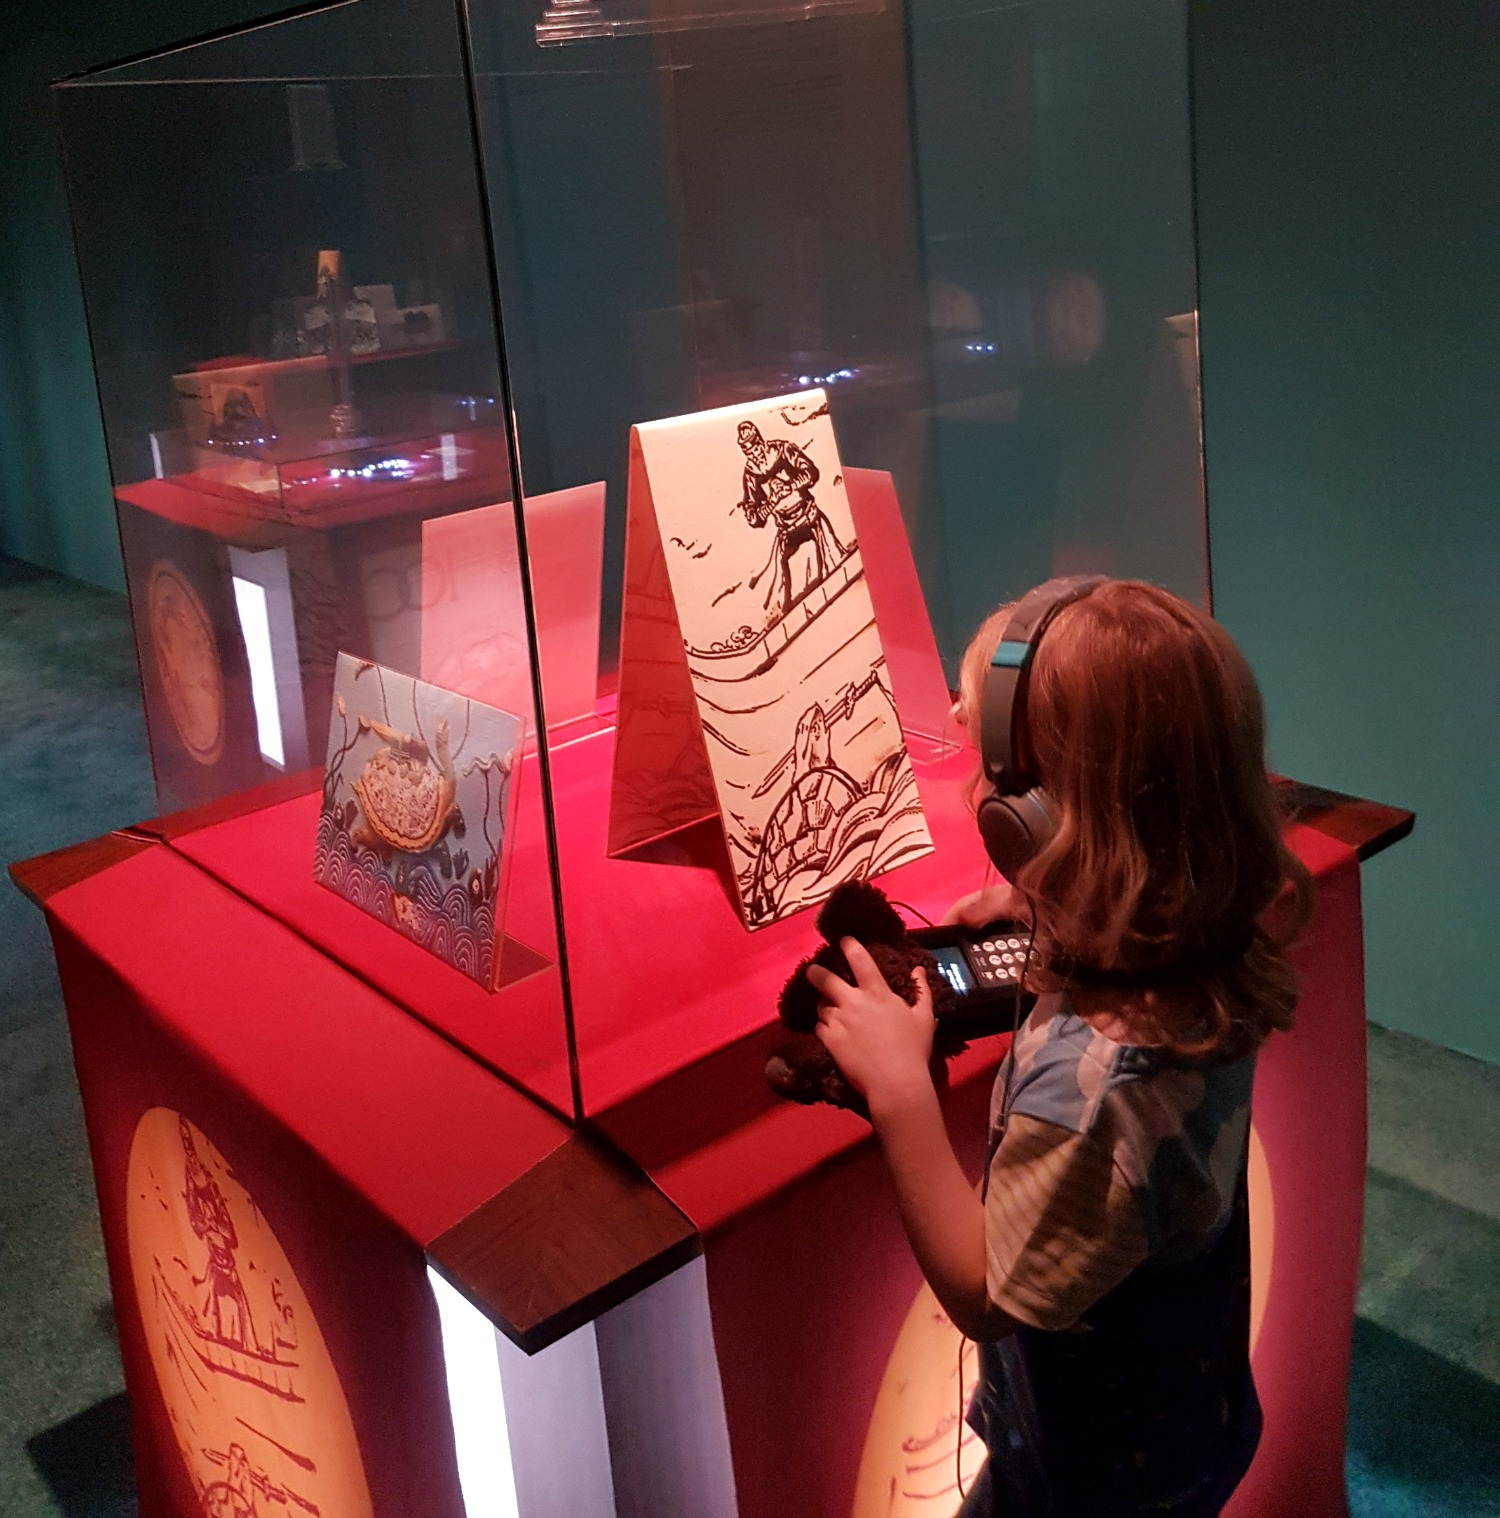 My daughter with audio guide looks at one of the exhibits in a case at the small museum - our stay at Ras al Jinz turtle reserve in Oman